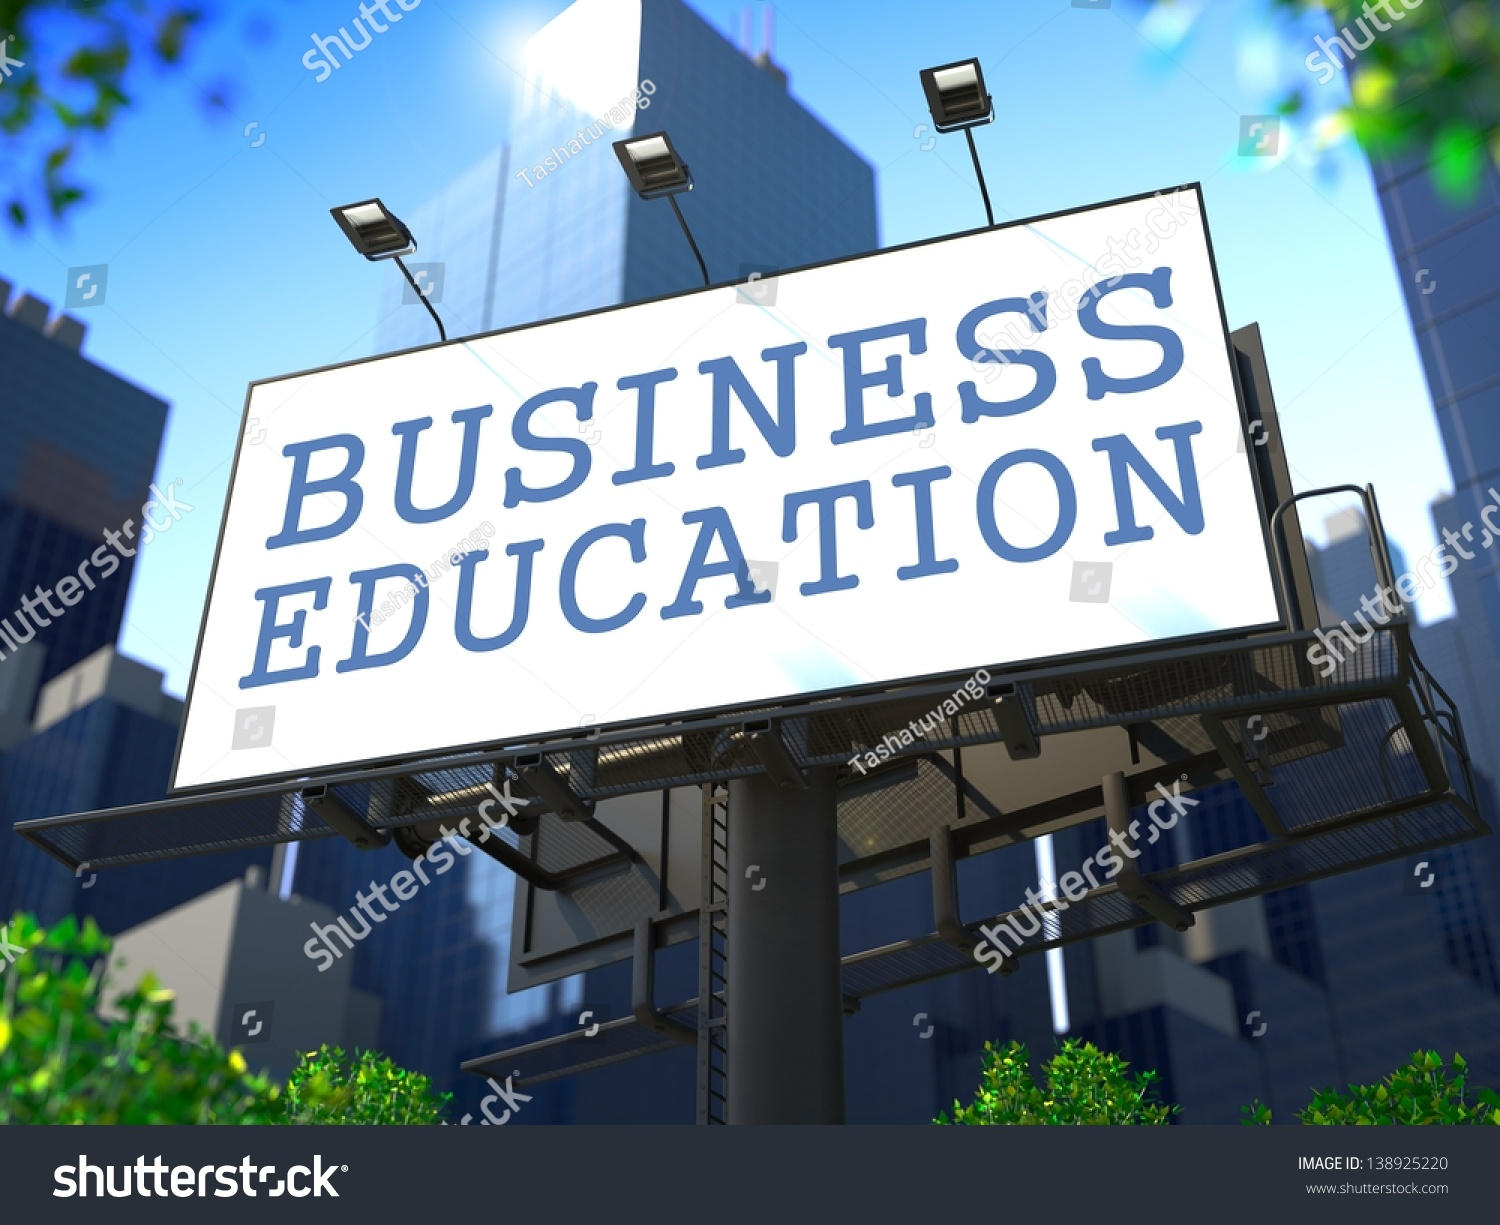 Business Education Concept Sloganbusiness Education On